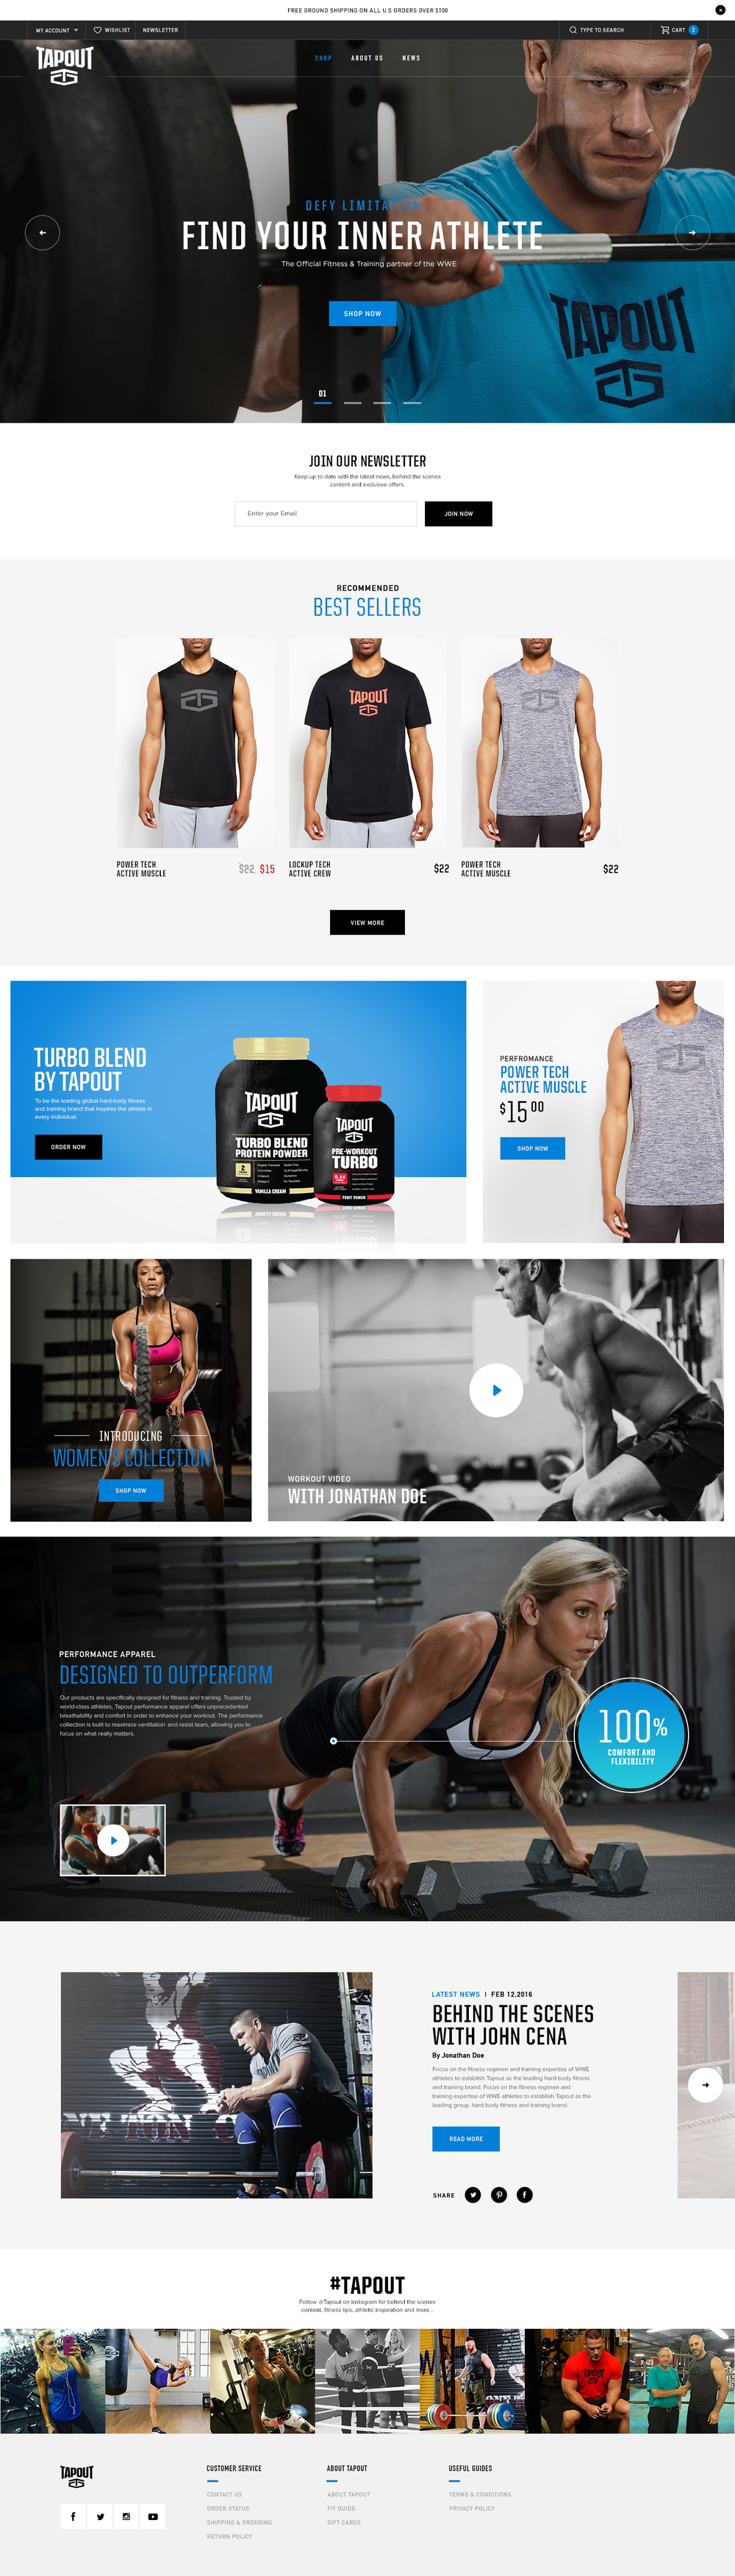 tapout_homepage-003b-20160706.jpg